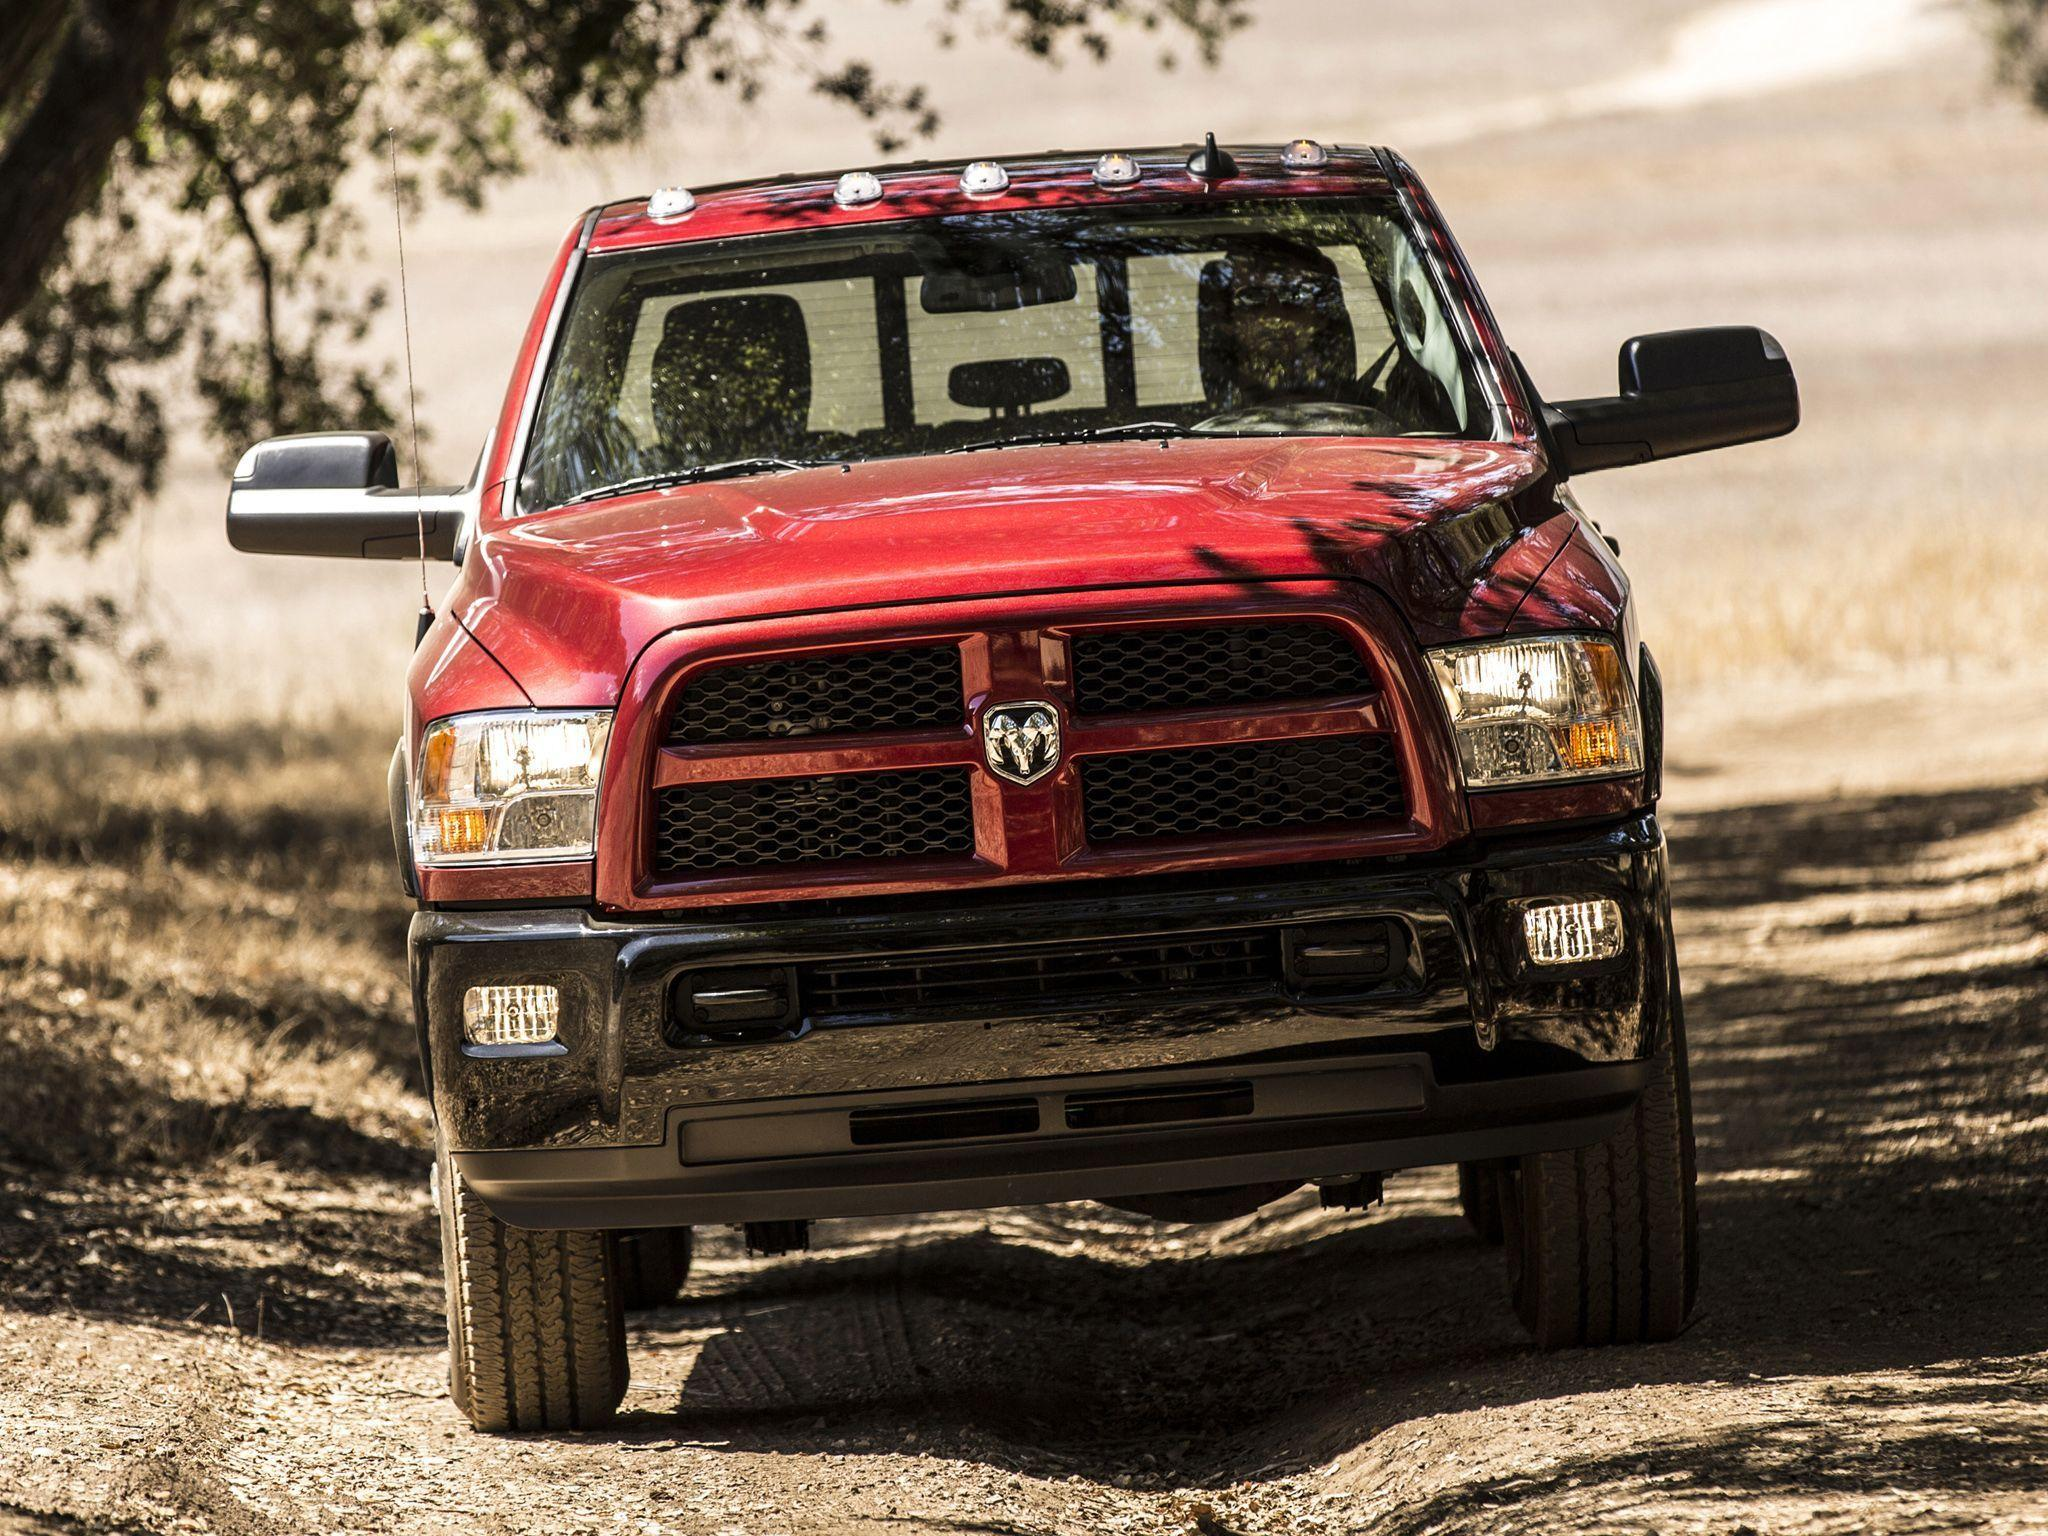 Dodge Truck Wallpapers Group